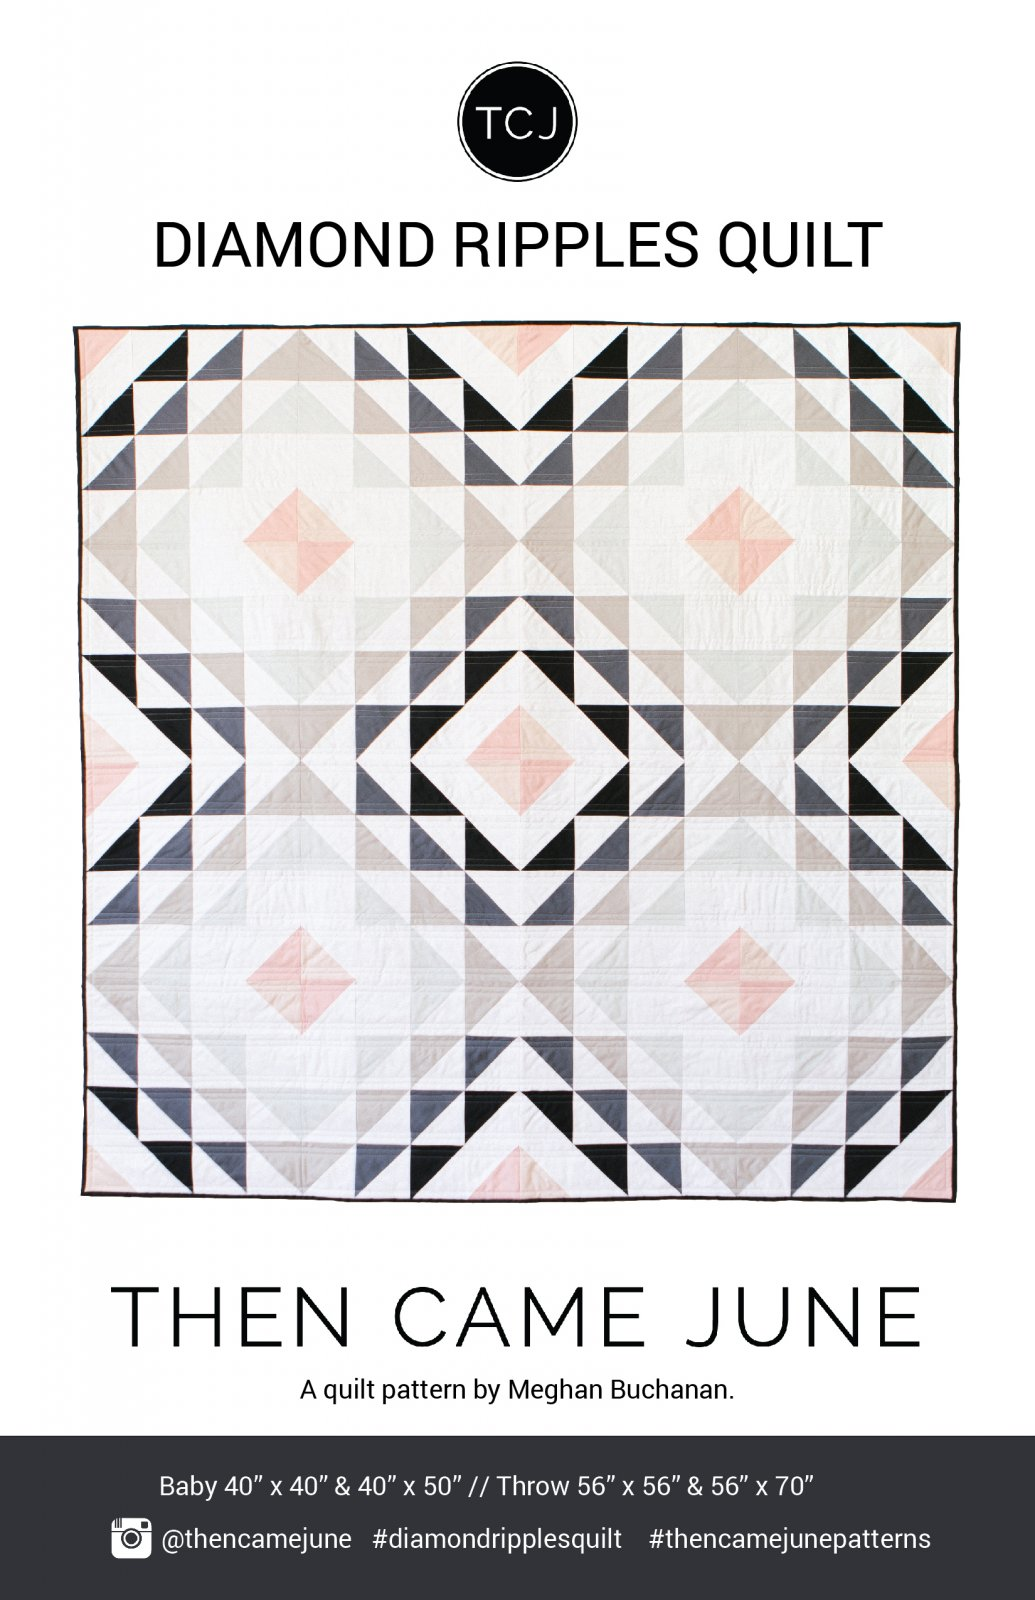 Diamond Ripples Quilt by Then Came June